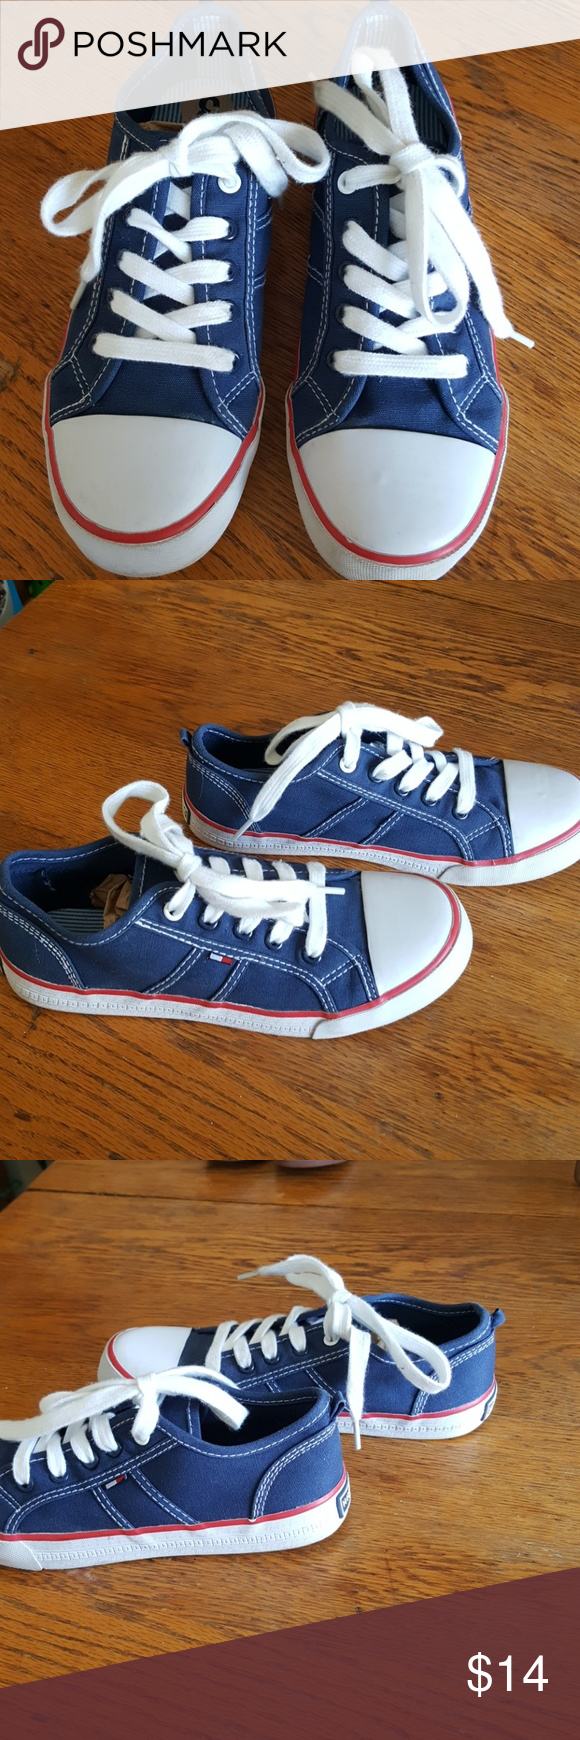 bd6dedf13bb00e TOMMY HILFIGER GIRLS CANVAS TENNIS SHIES Tommy Hilfiger red white and blue  canvas tennis shoes girls size 3 gently used very good condition.